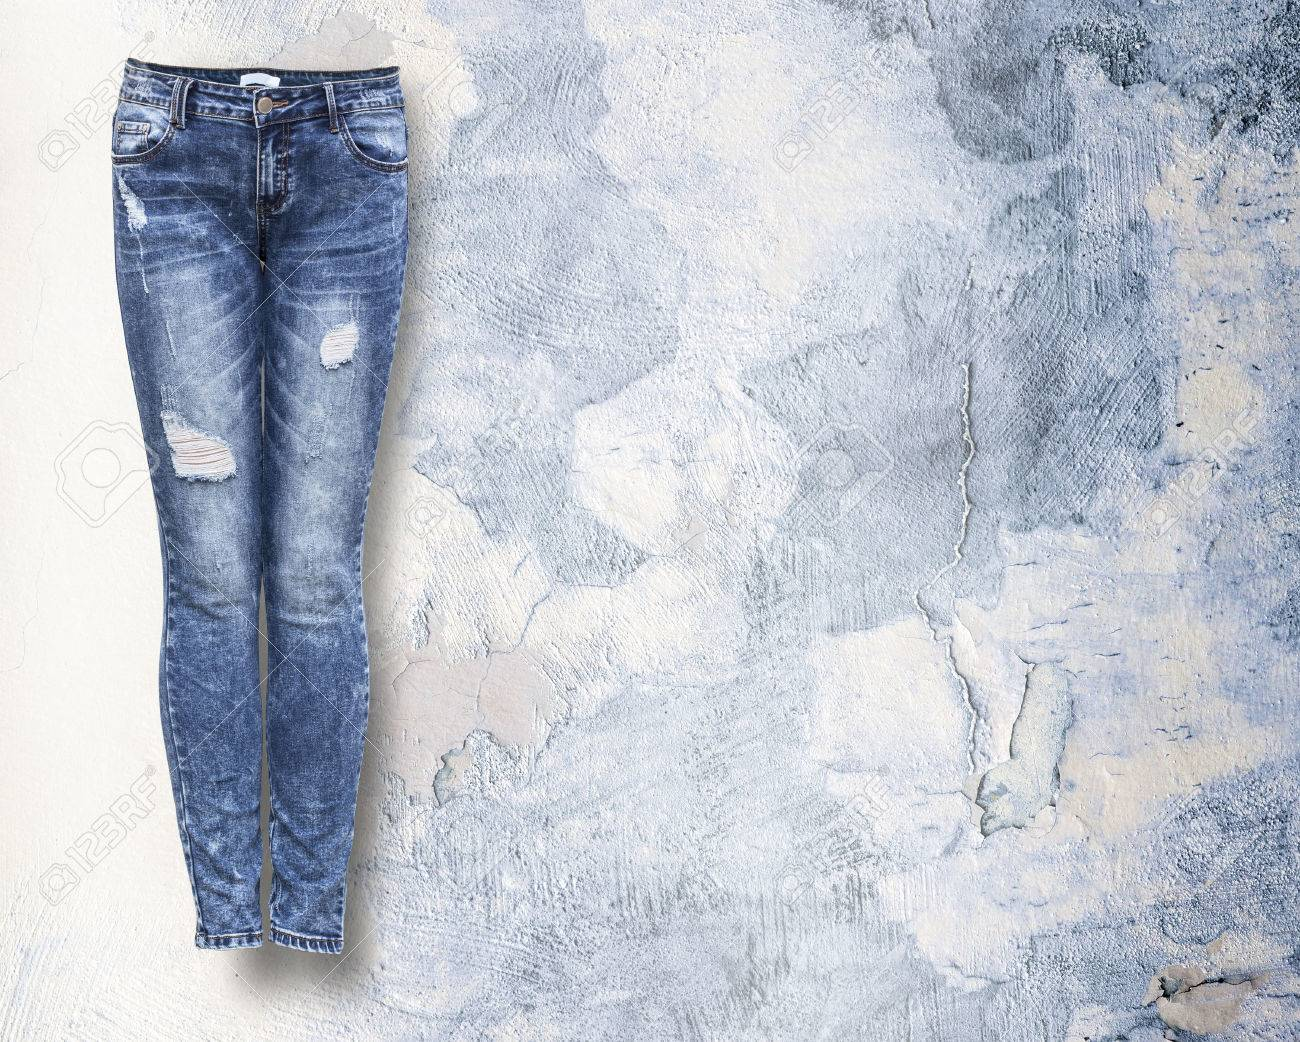 woman jeans in light light grunje background with copy space - 47856366